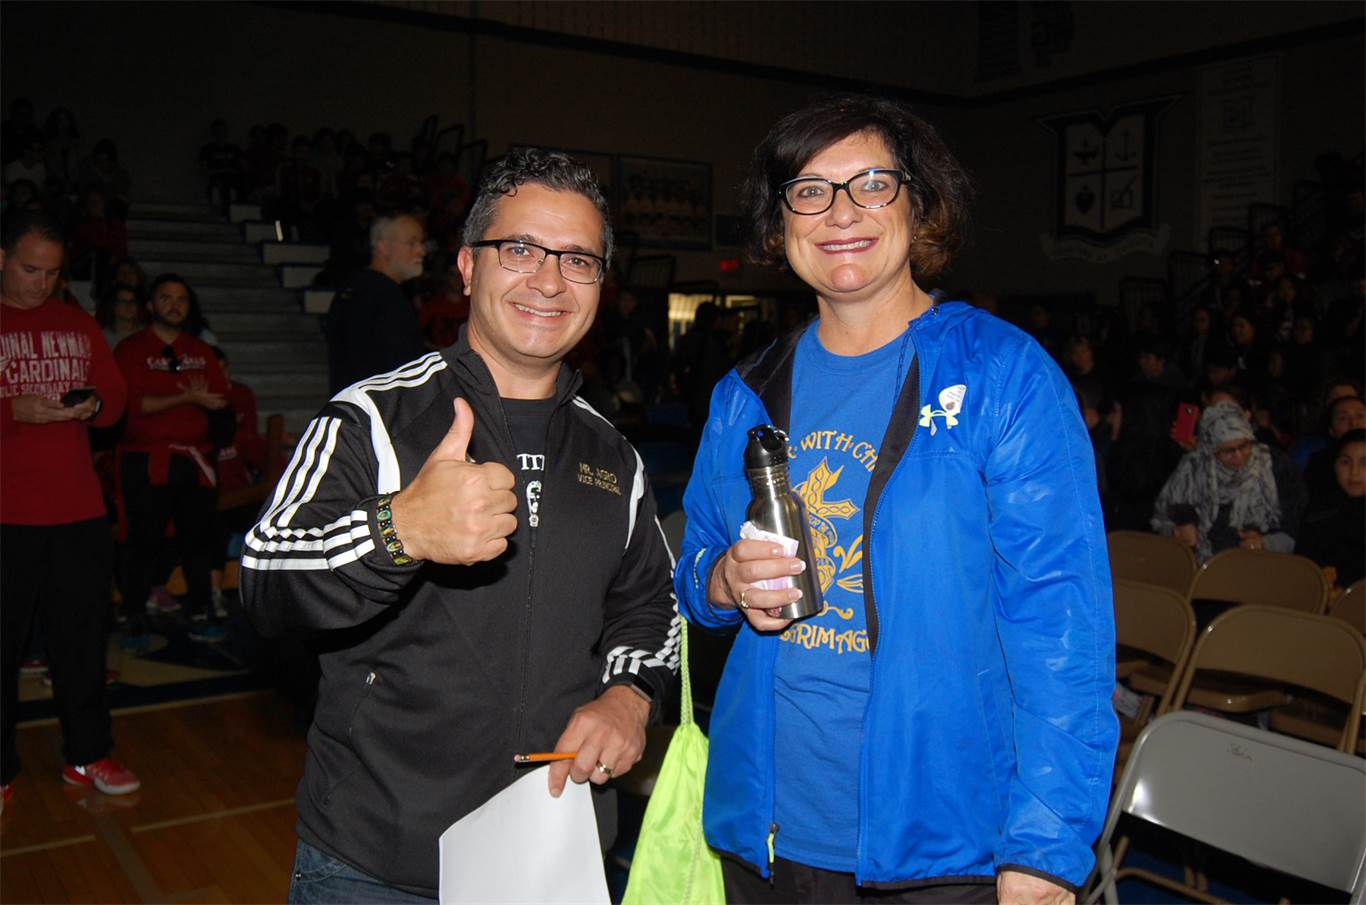 Charlie Agro, Vice-Principal at St. Thomas More Catholic Secondary School and Sandie Pizzuti, Superintendent of Education